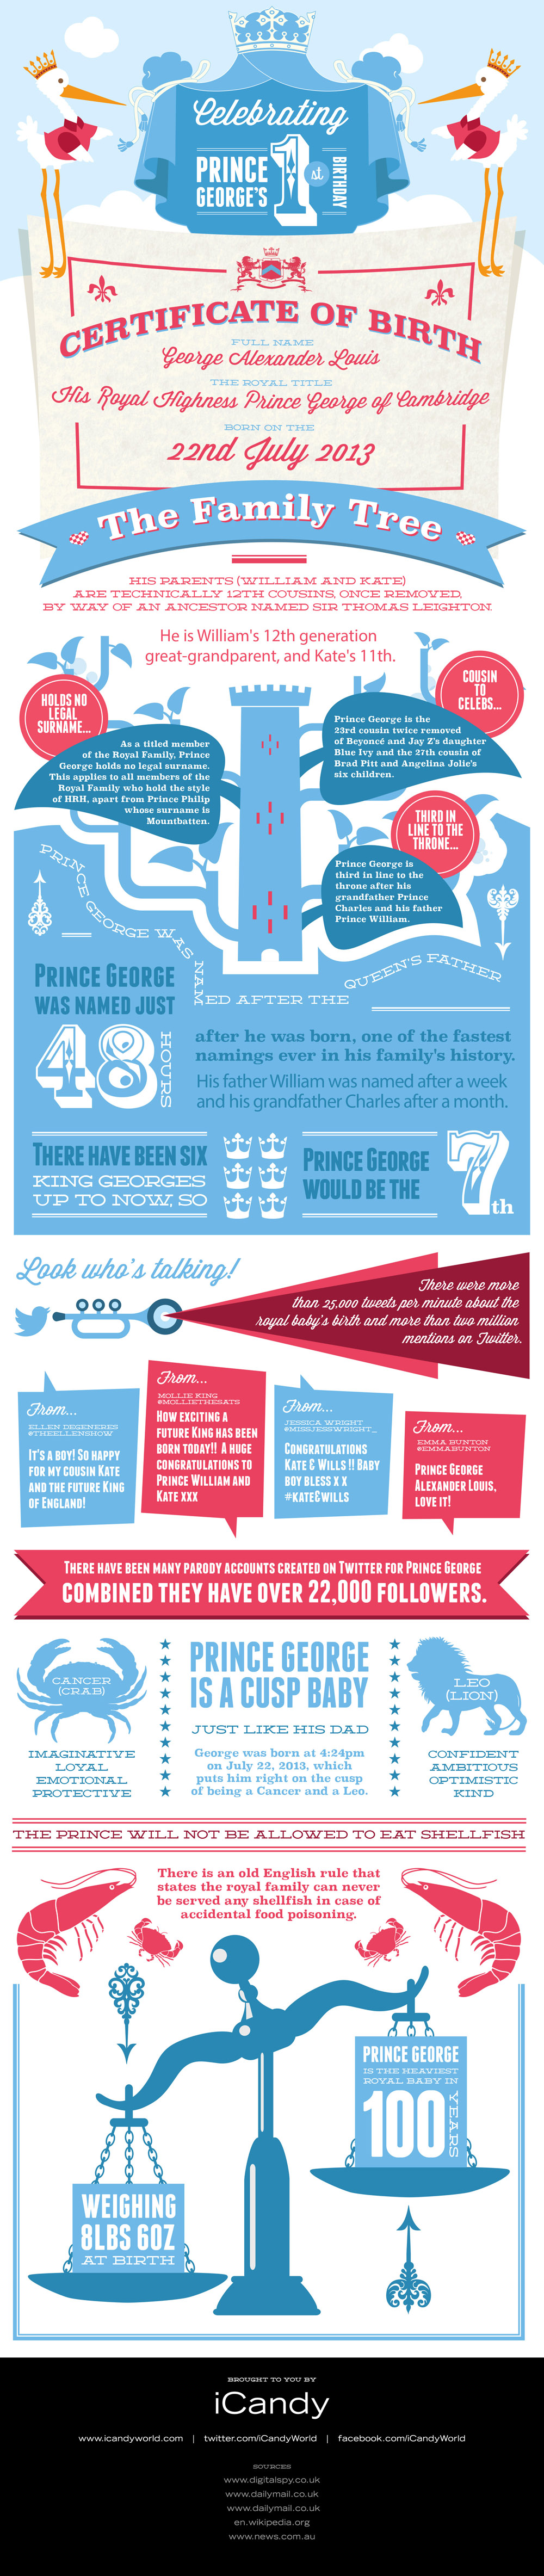 prince-george-infographic-small